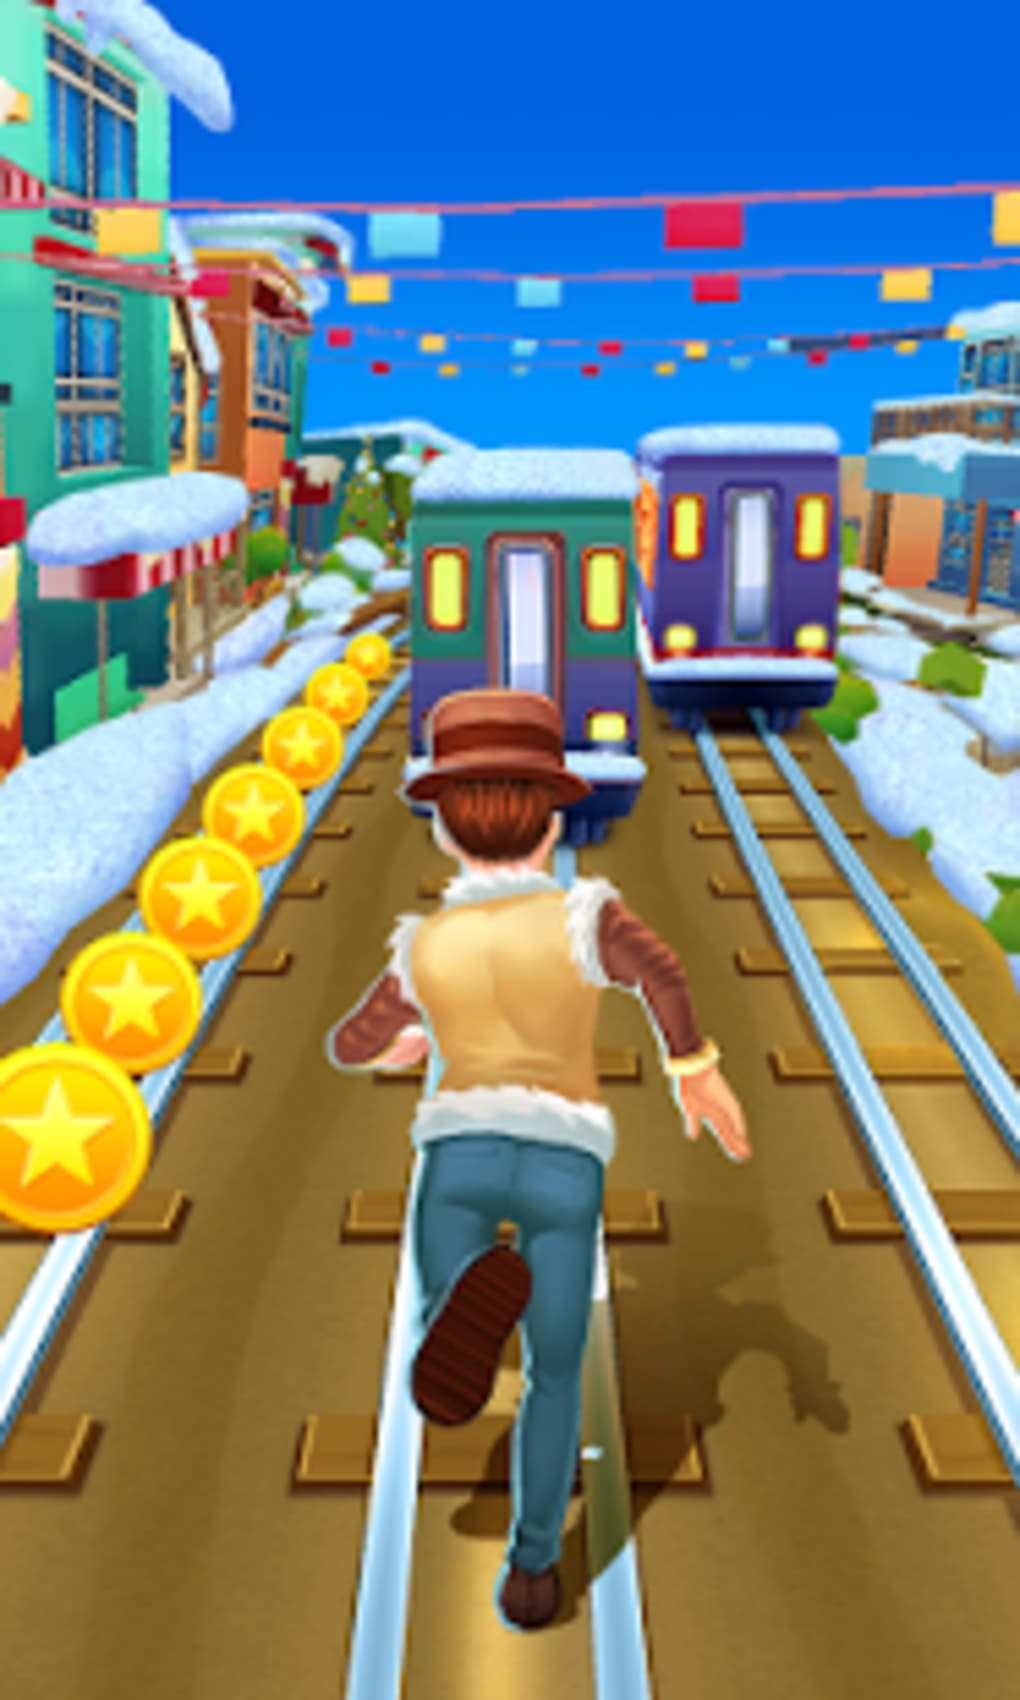 subway surfers game for pc free download with keyboard controls